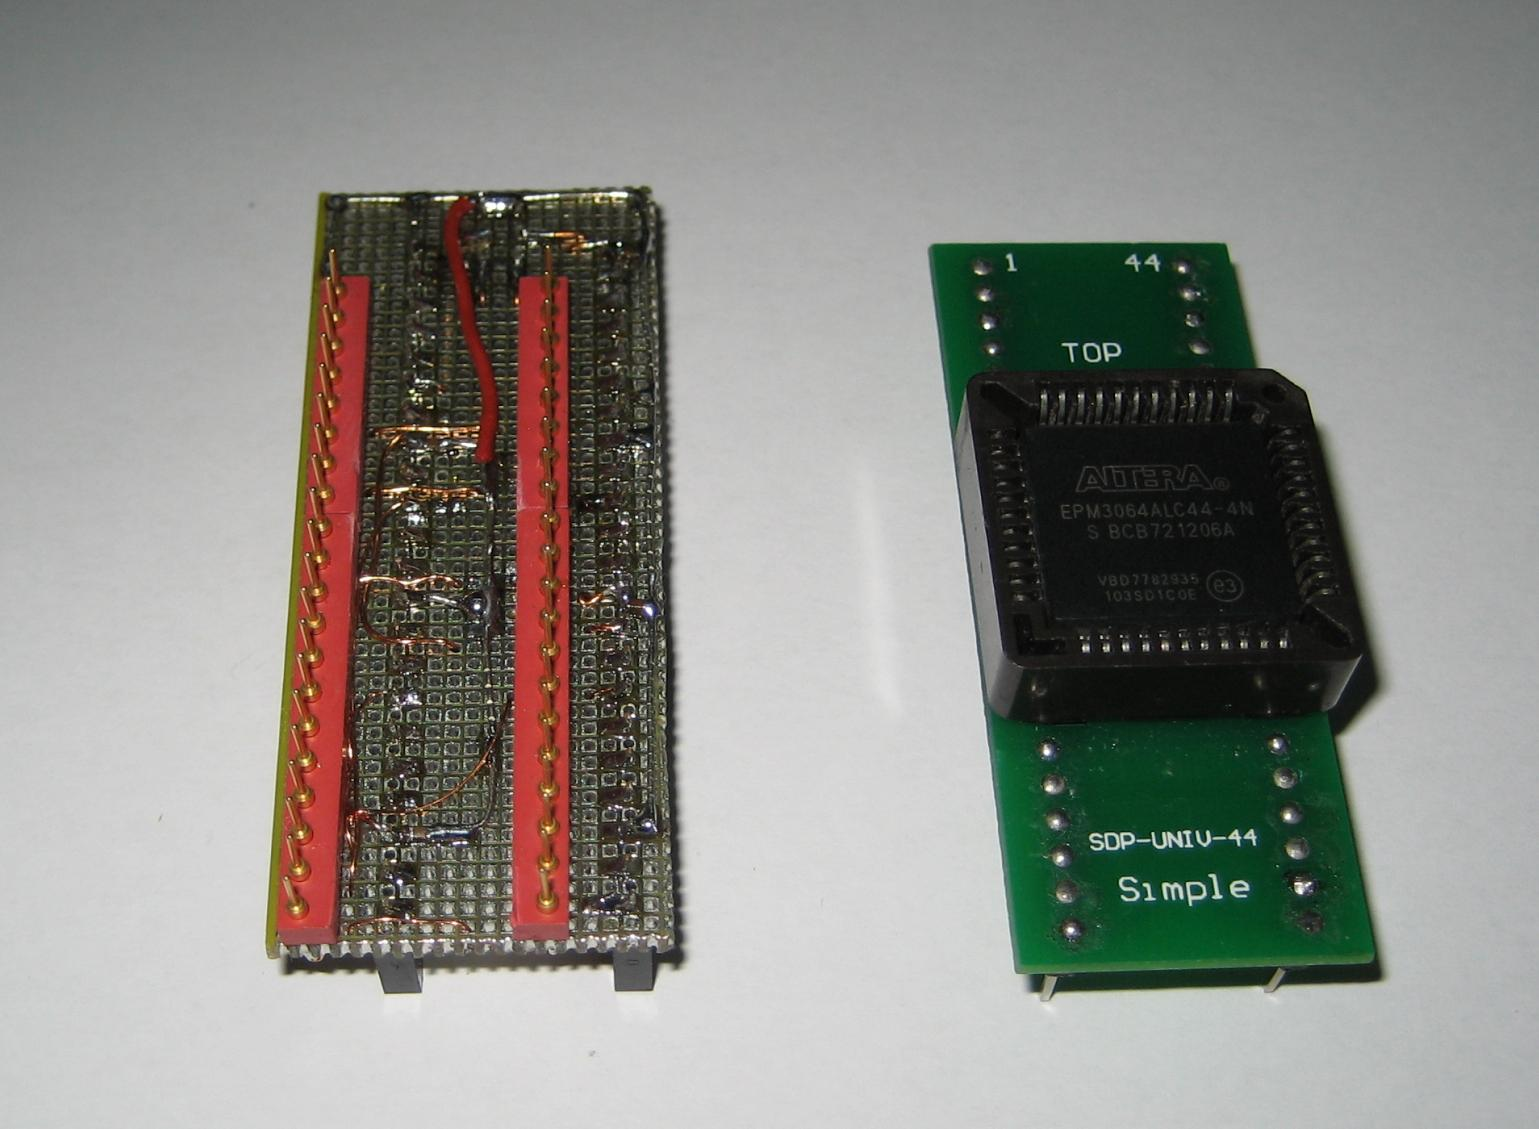 Hilosystems Hi Lo All 07 Parallel Port Universal Device Programmer Atx Power Supply Wiring Diagram This Adapter Is Necessary To Program Cplds With Locked Jtag Pins So Not A Simple Isp Schematic Contains Pinout For Available Packages